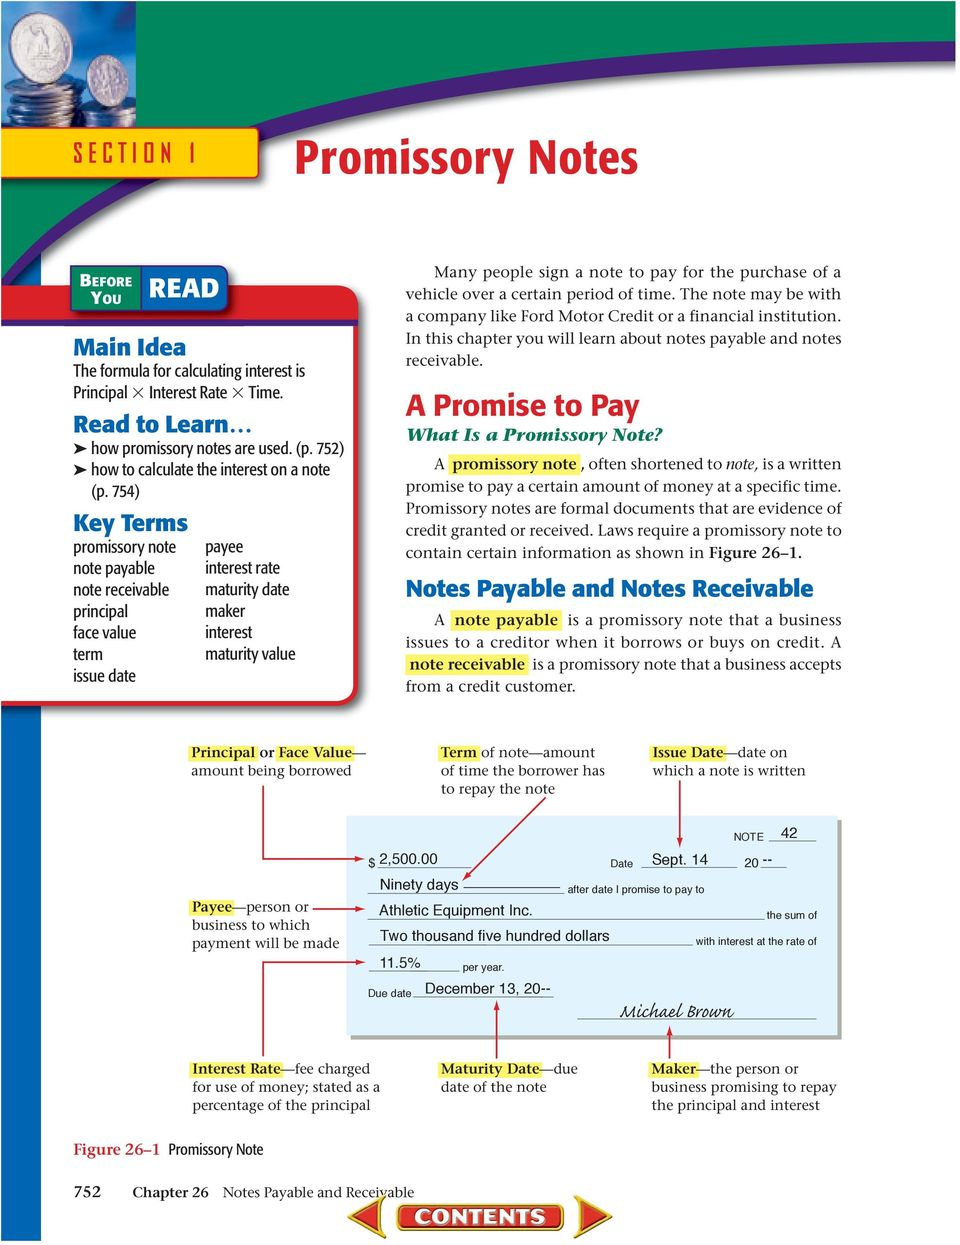 7) Key Terms promissory note note payable note receivable principal face value term issue date payee interest rate maturity date maker interest maturity value Many people sign a note to pay for the